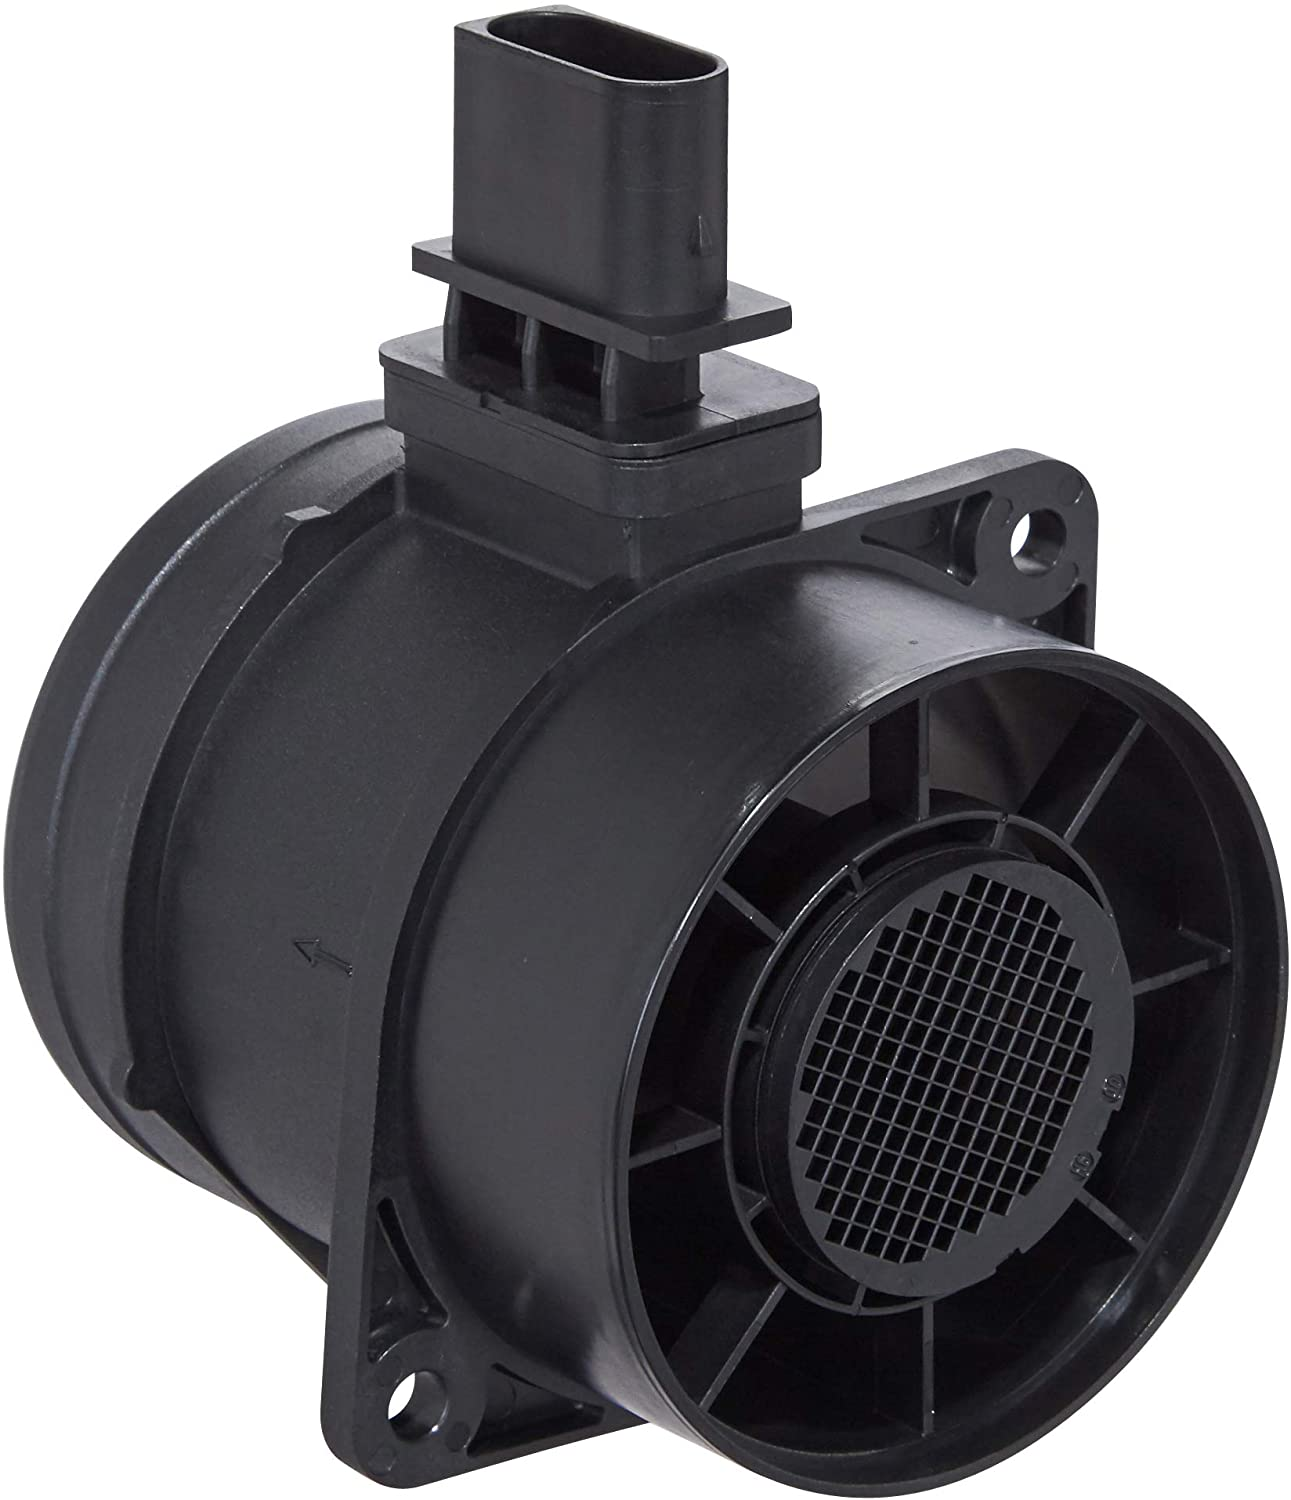 Spectra Premium MA315 Mass Air Flow Sensor